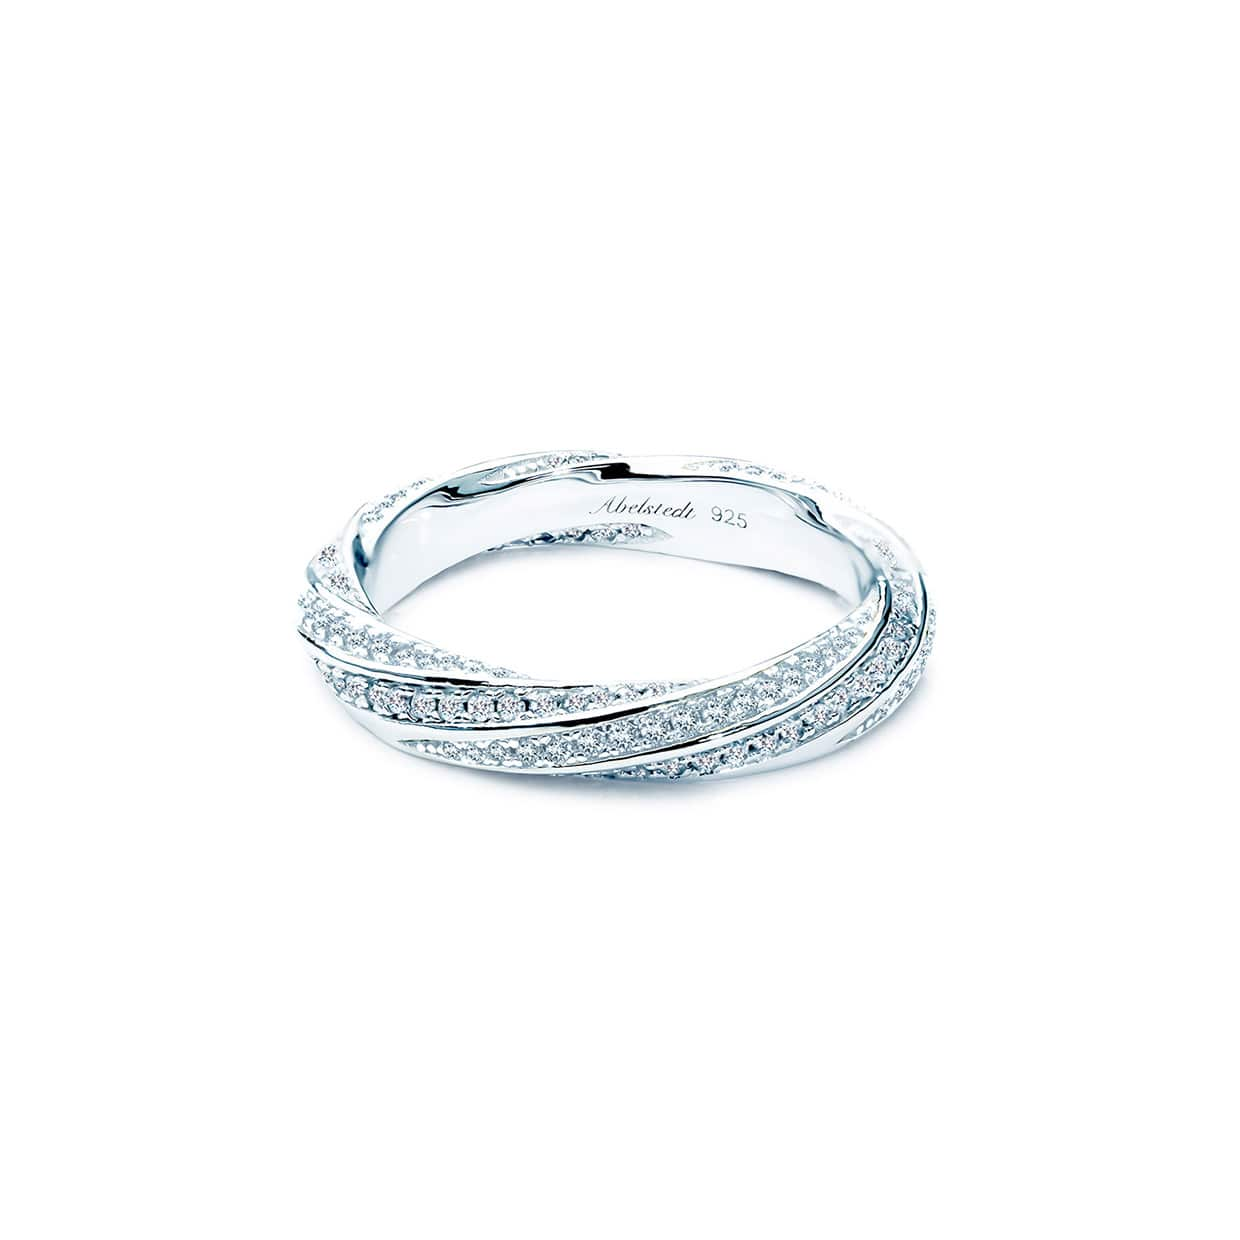 Sahara White Twisted Band Ring - Abelstedt